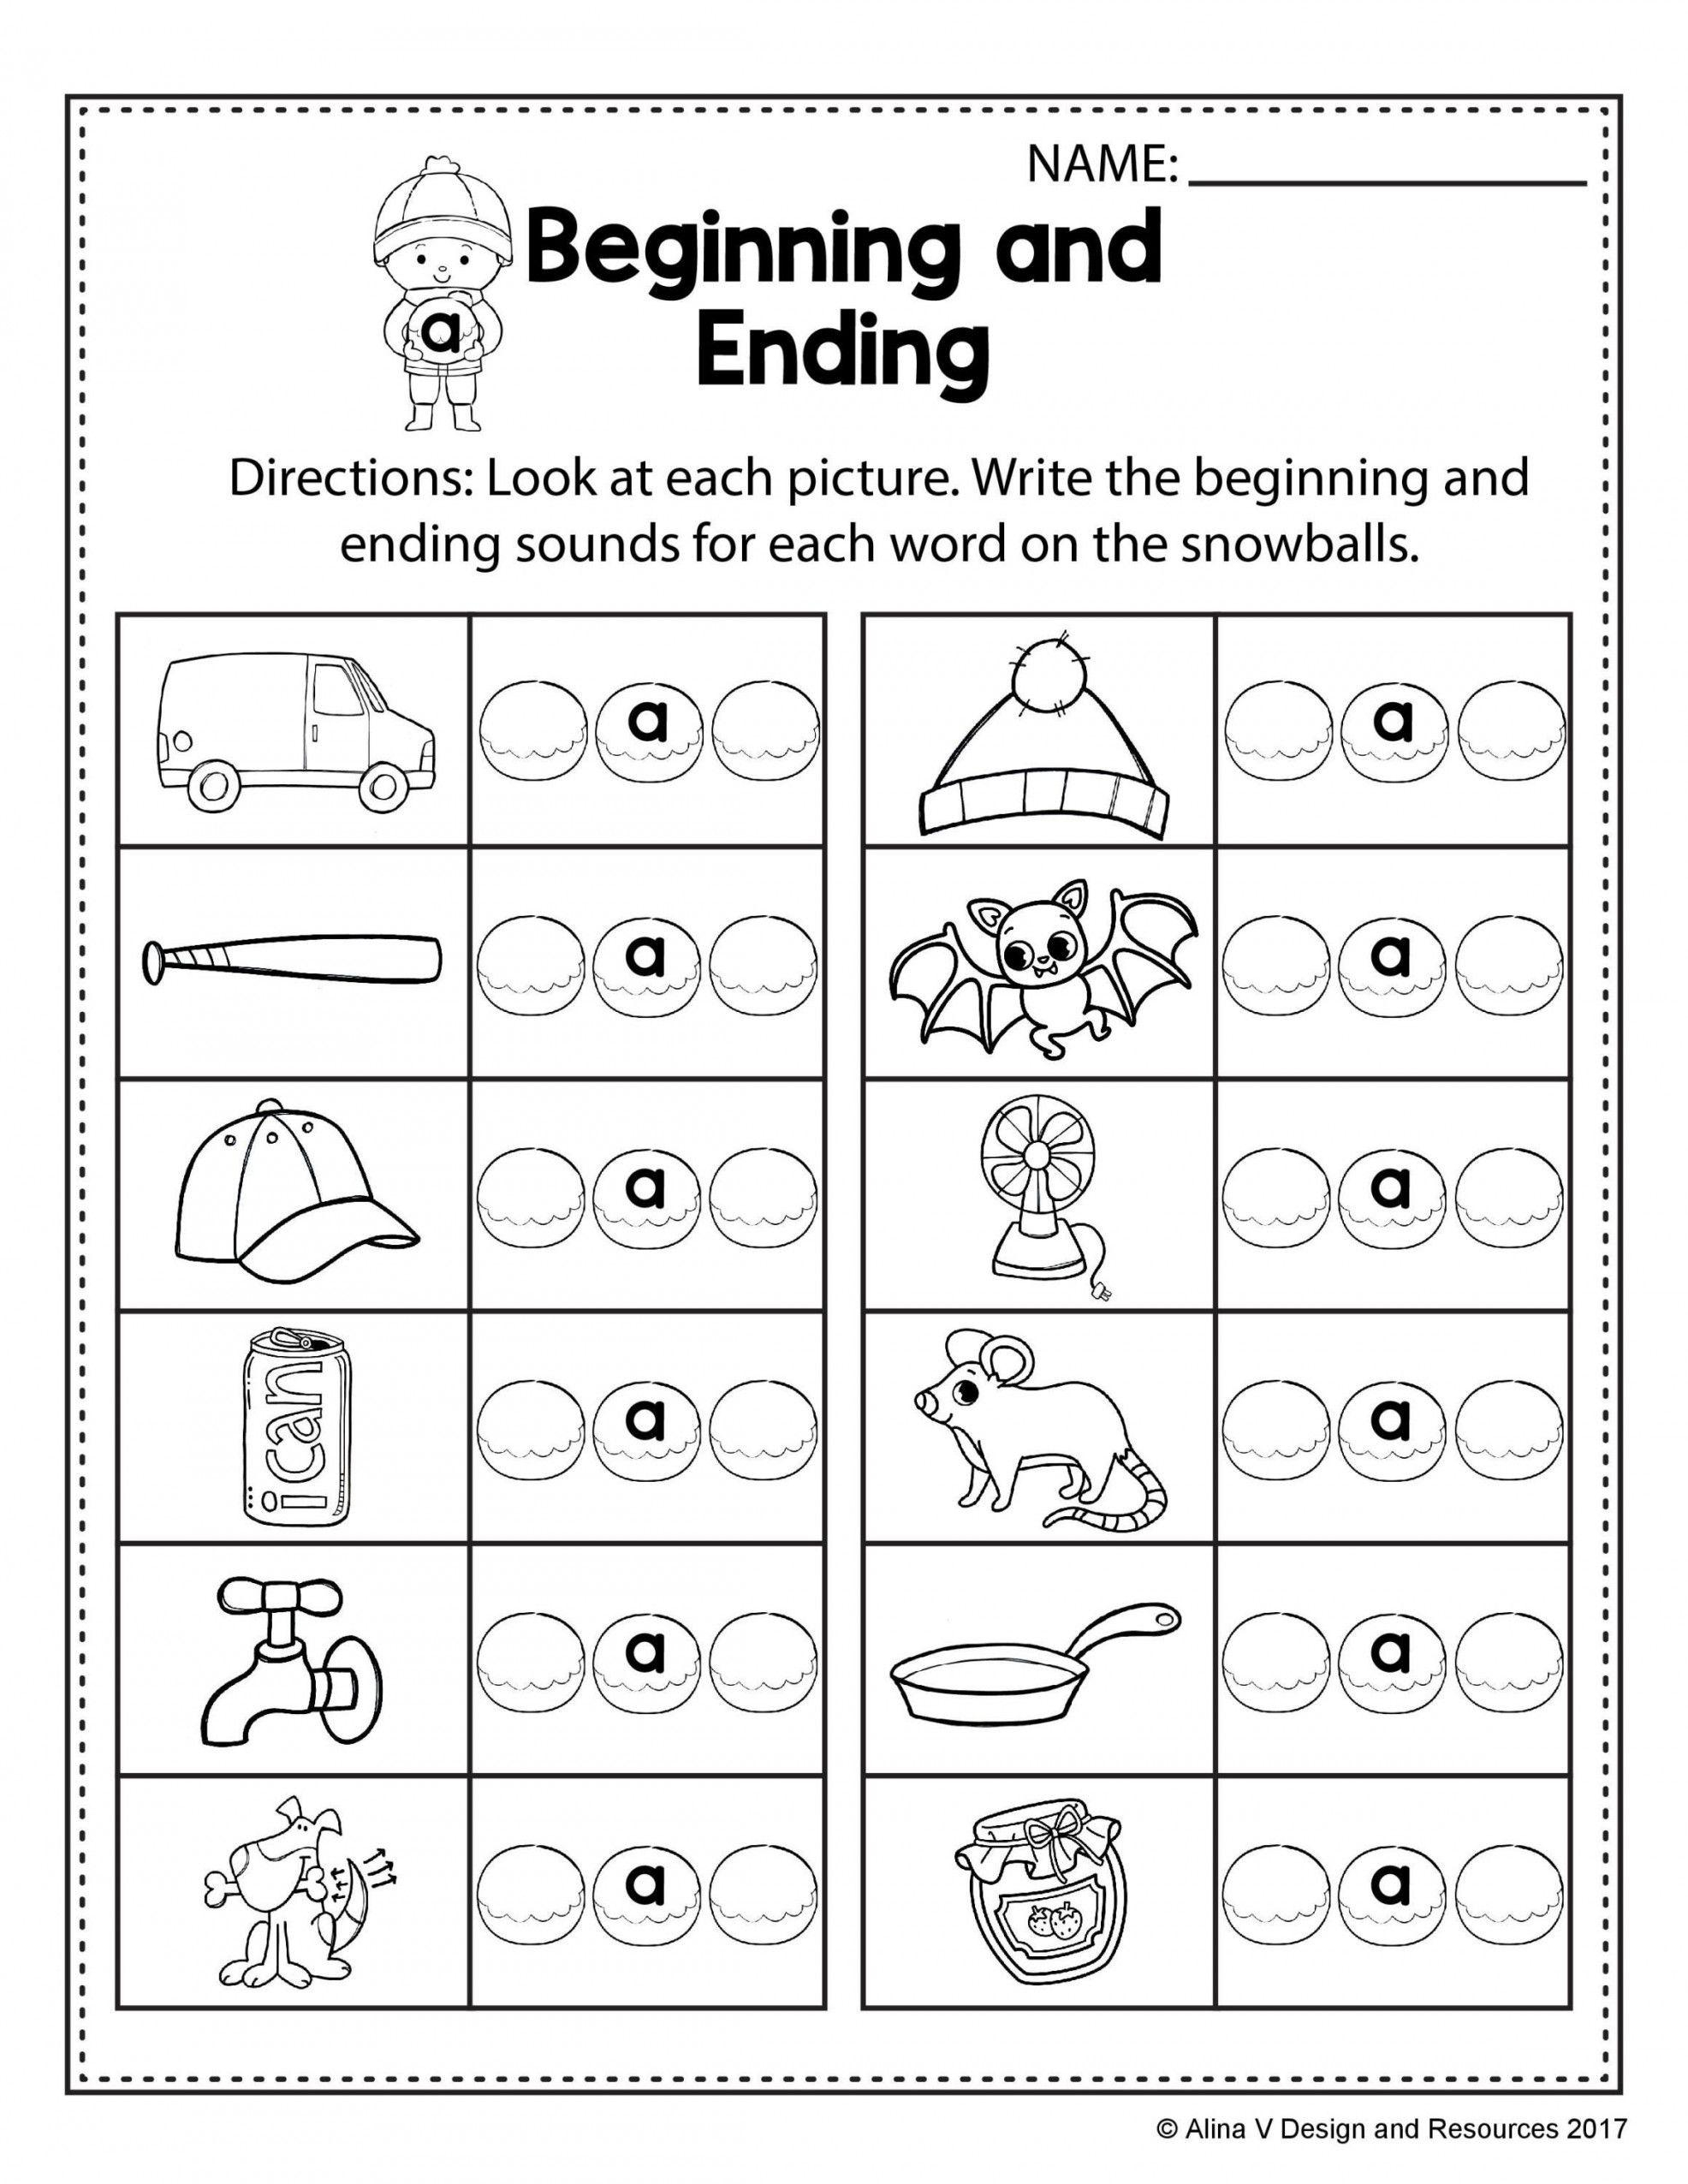 Cvc Words Worksheets Free Printable | Lostranquillos - Cvc Words Worksheets Free Printable